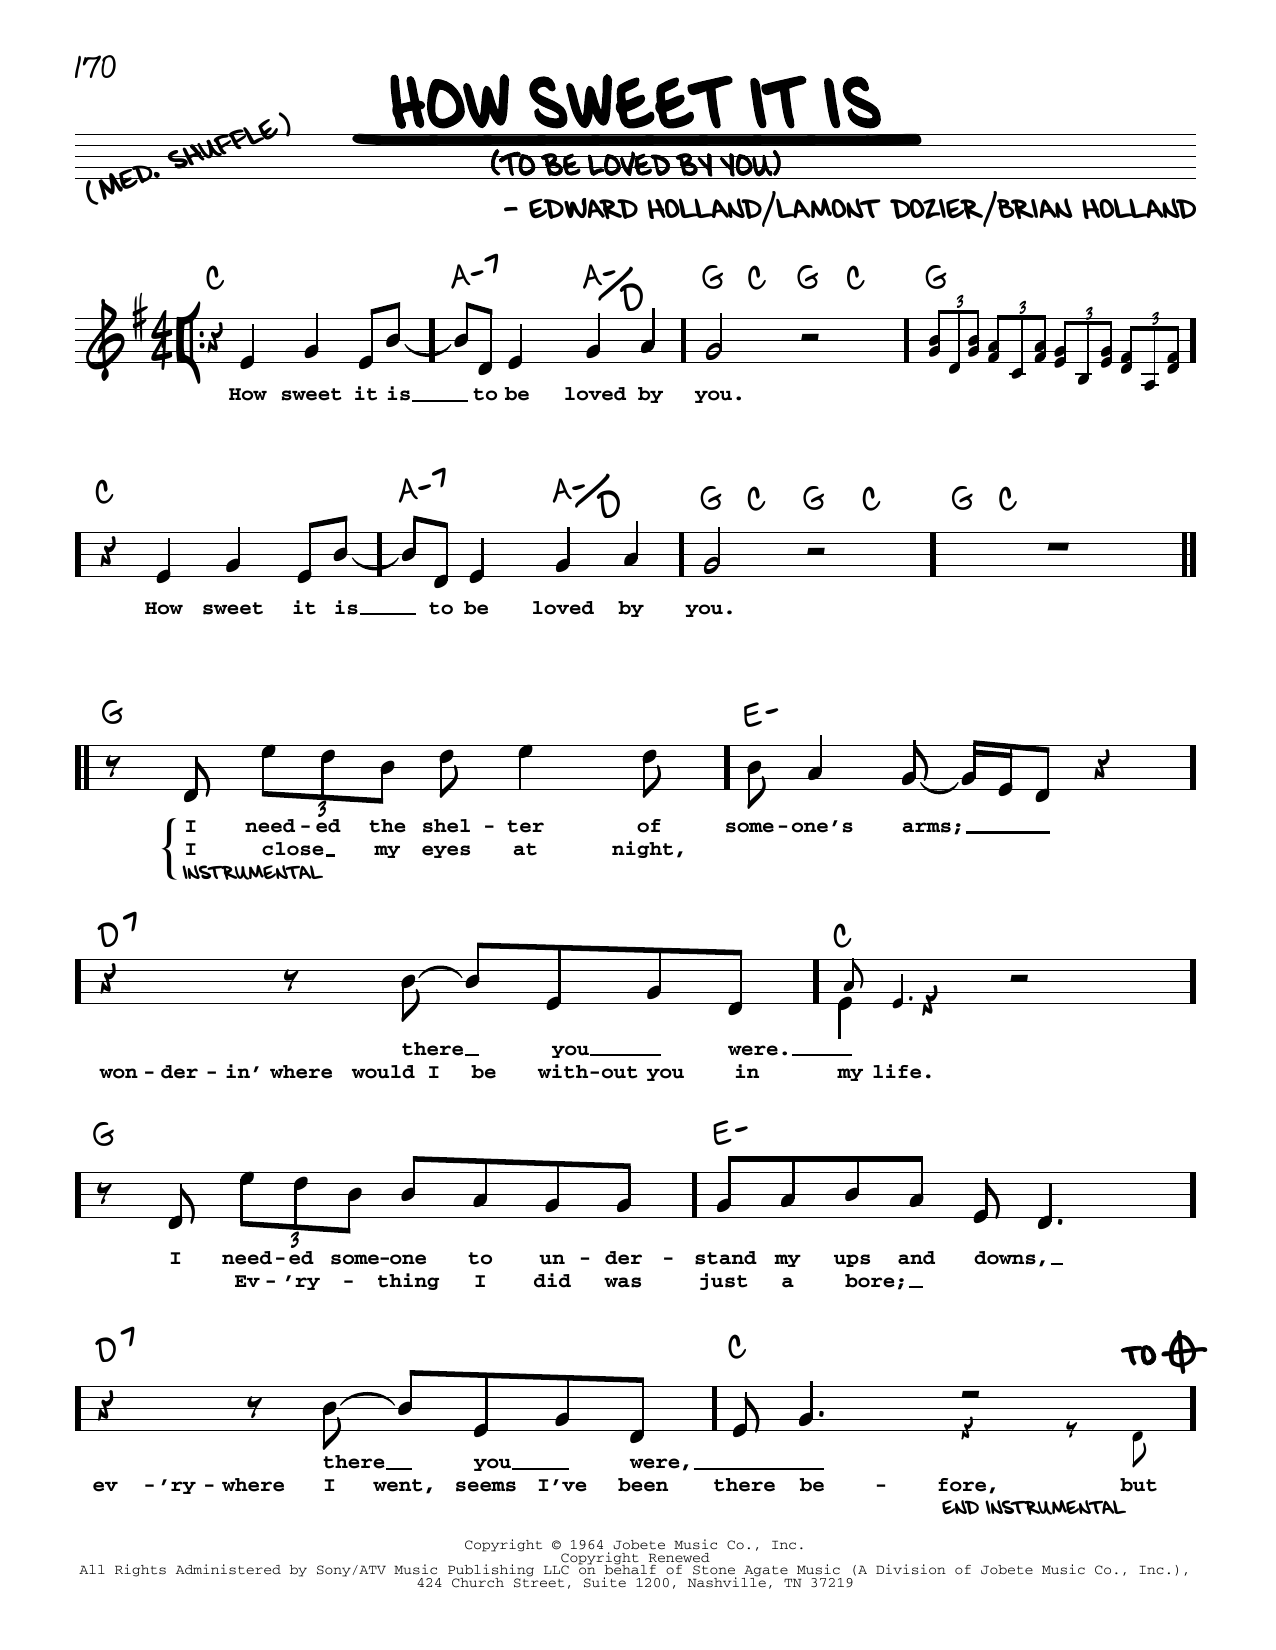 How Sweet It Is (To Be Loved By You) Sheet Music